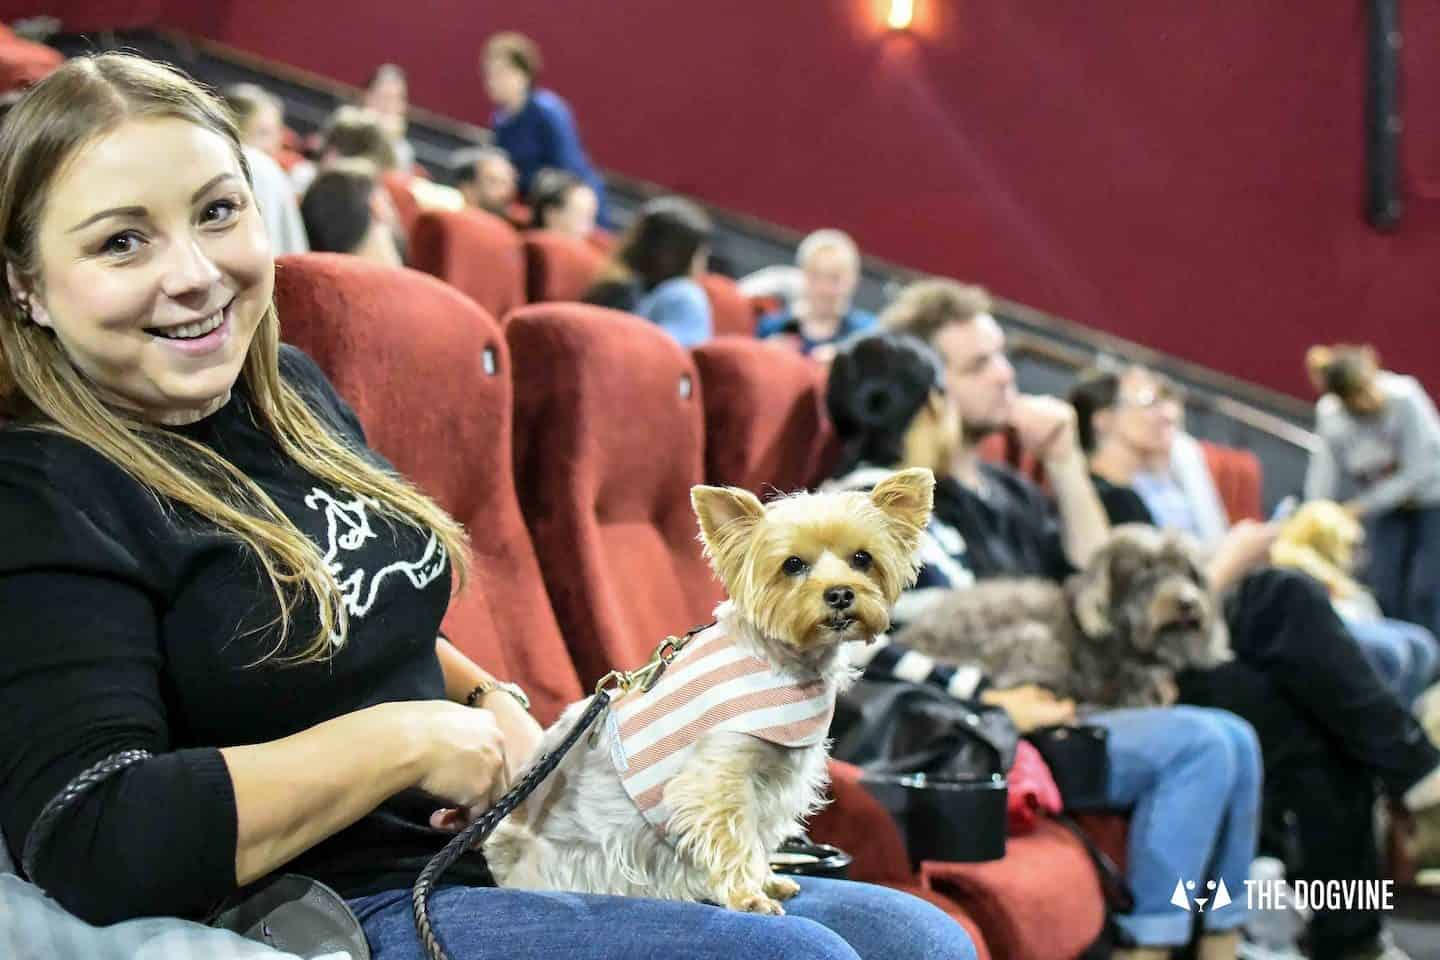 Dog-friendly Events and Things to do in May - Dog-Friendly Cinema